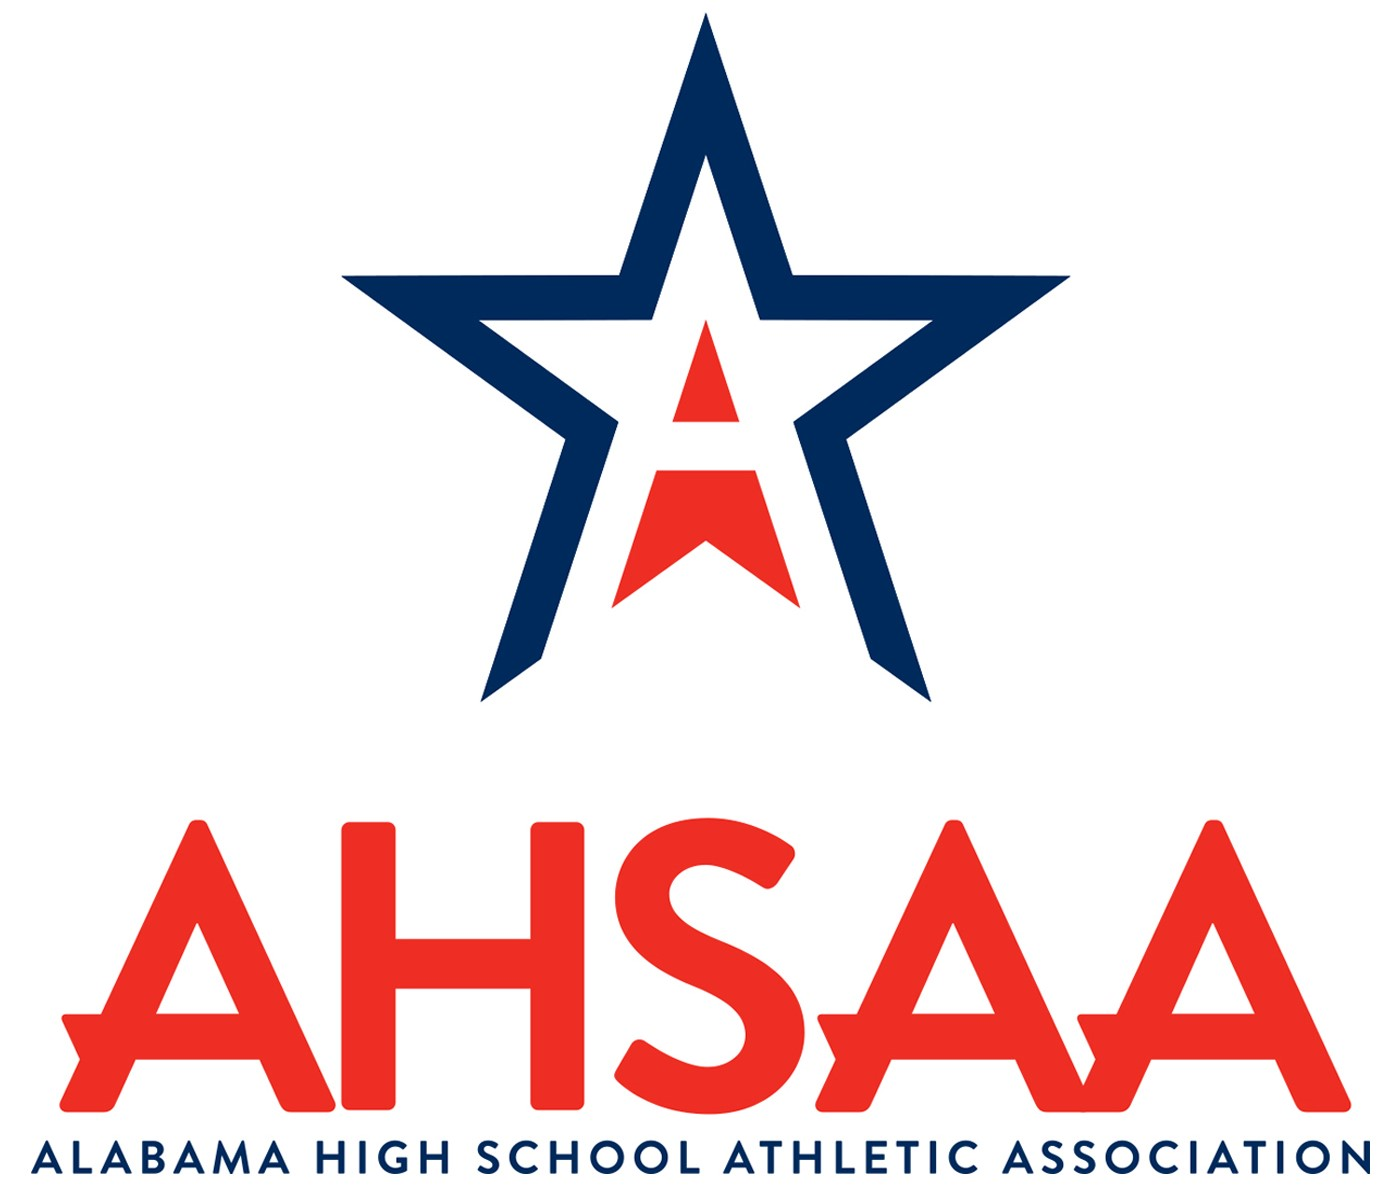 Central Board Approves Spring Sports Alignments for 2020-21 & 2021-22 Seasons